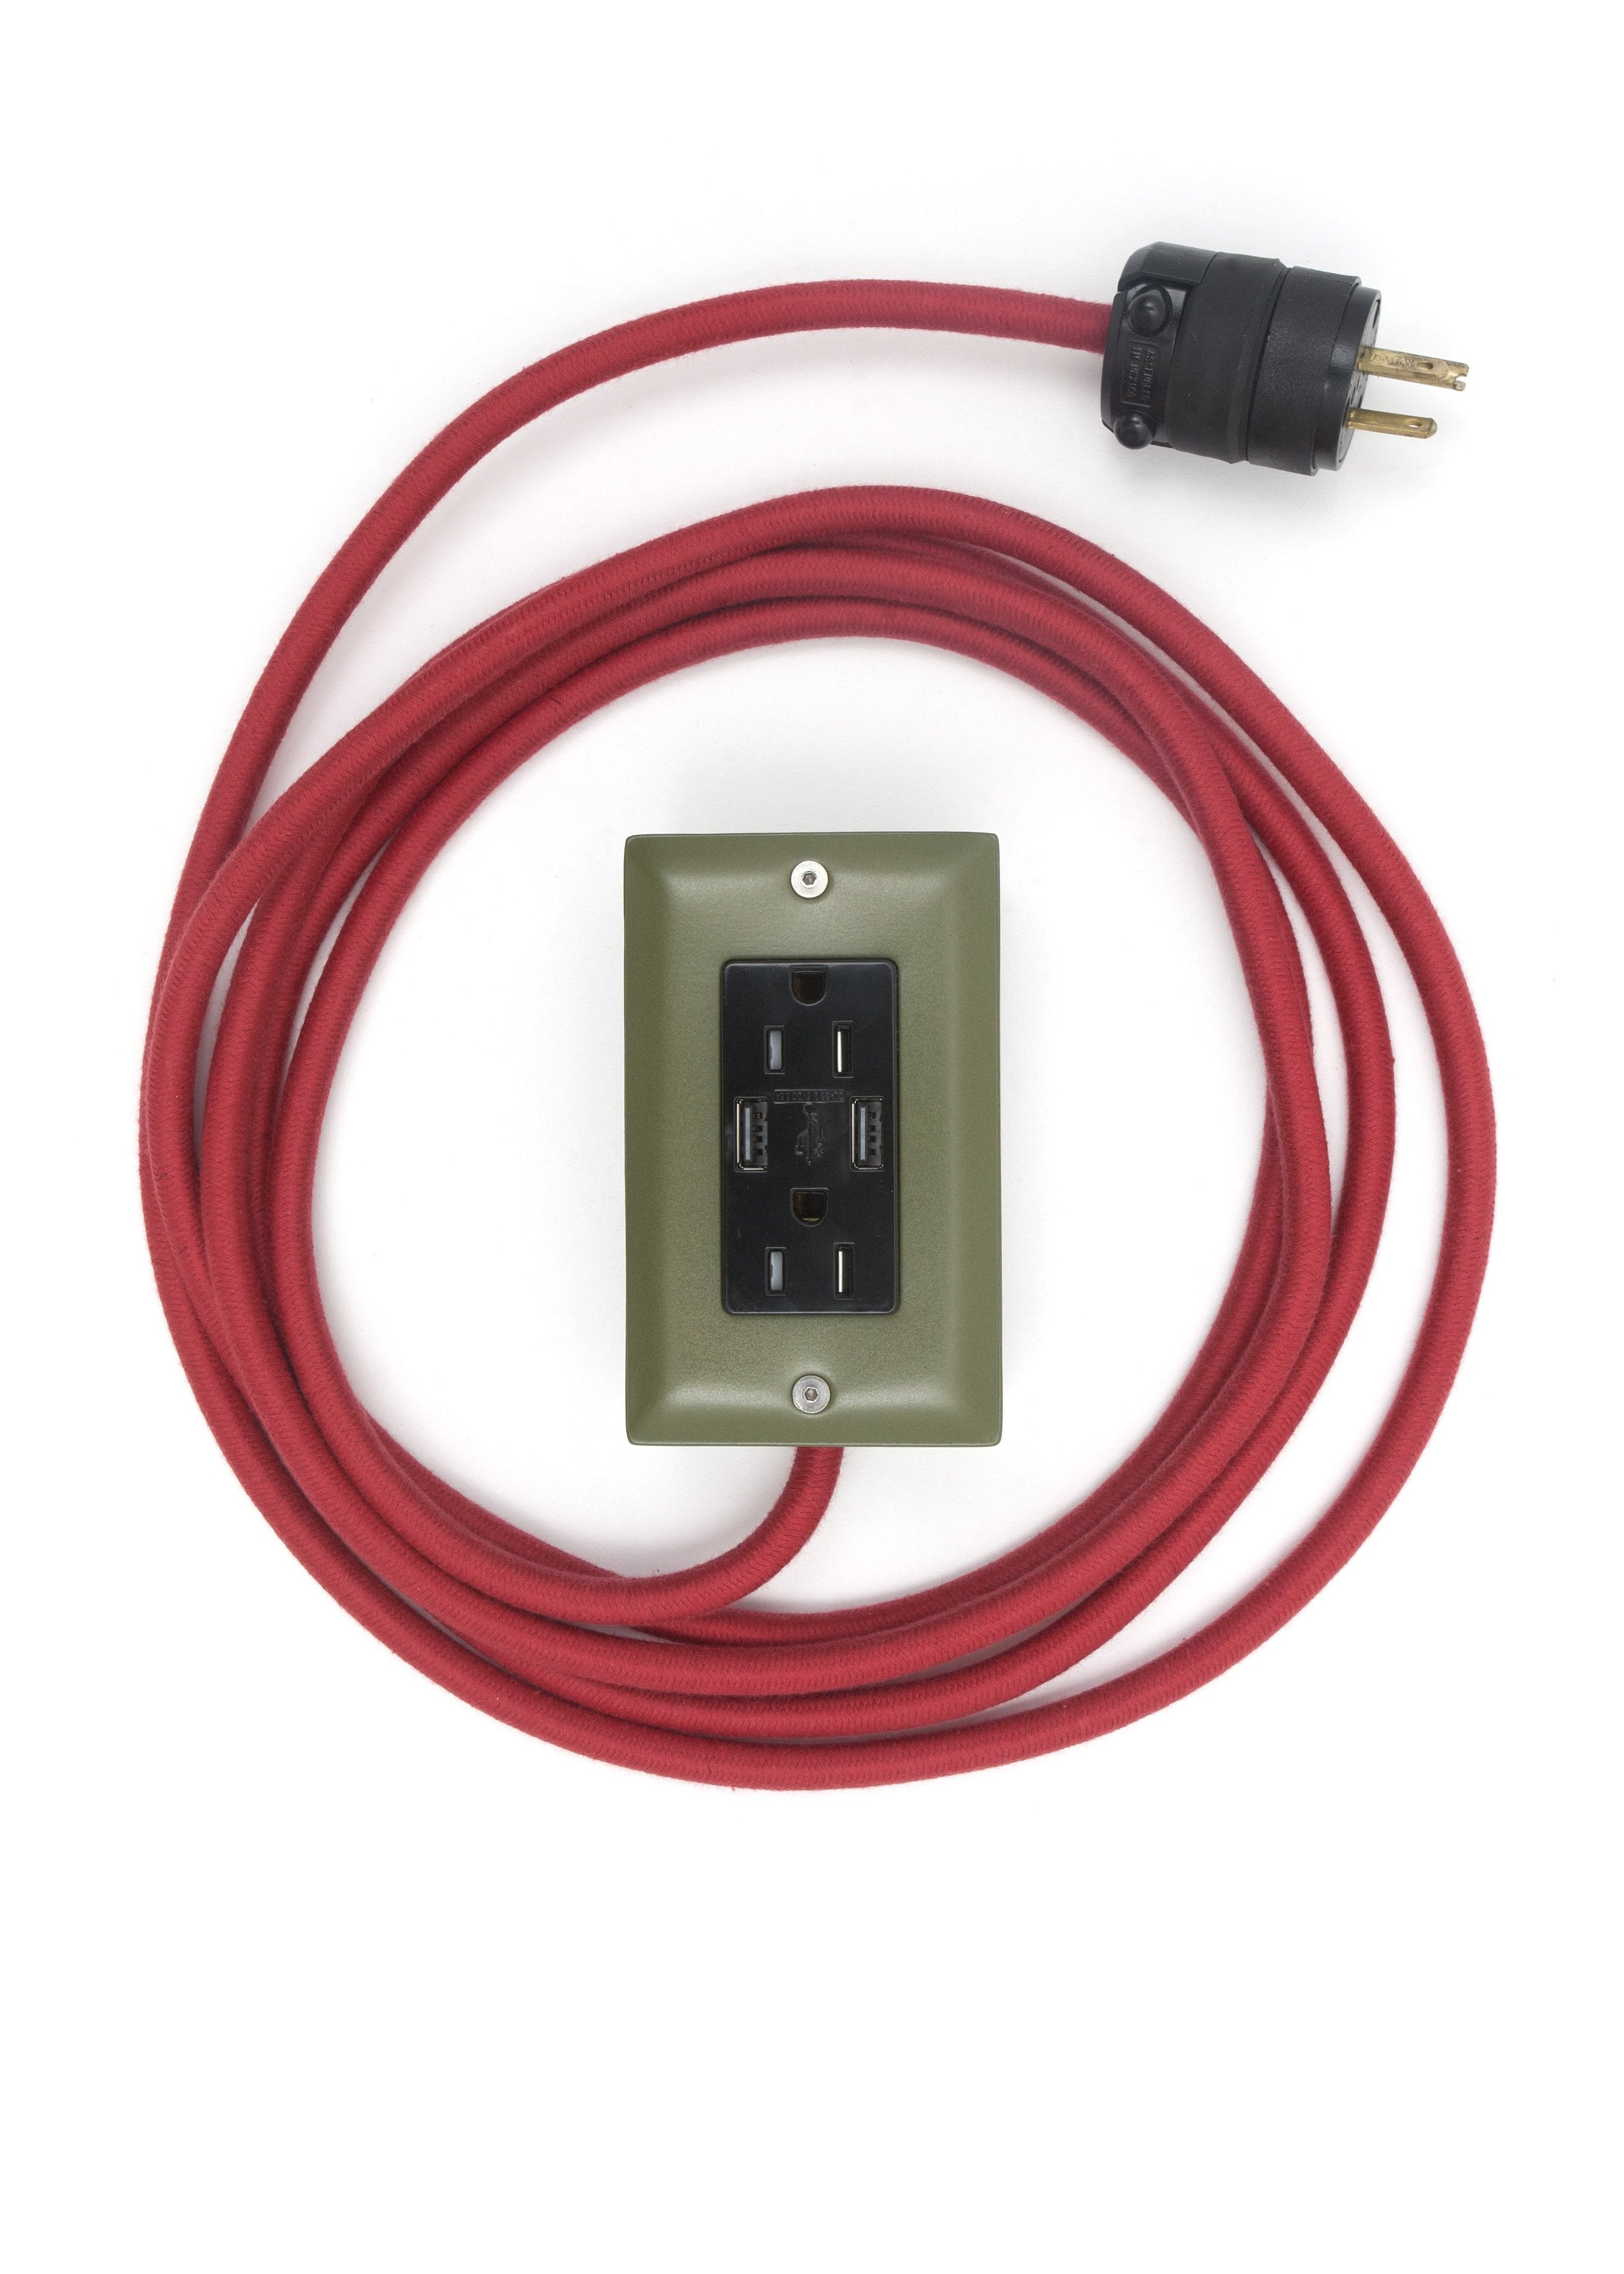 12 Ext Usb The First Smart Chip Extension Cord Conway Wiring To Outlet Dual 4077th Green